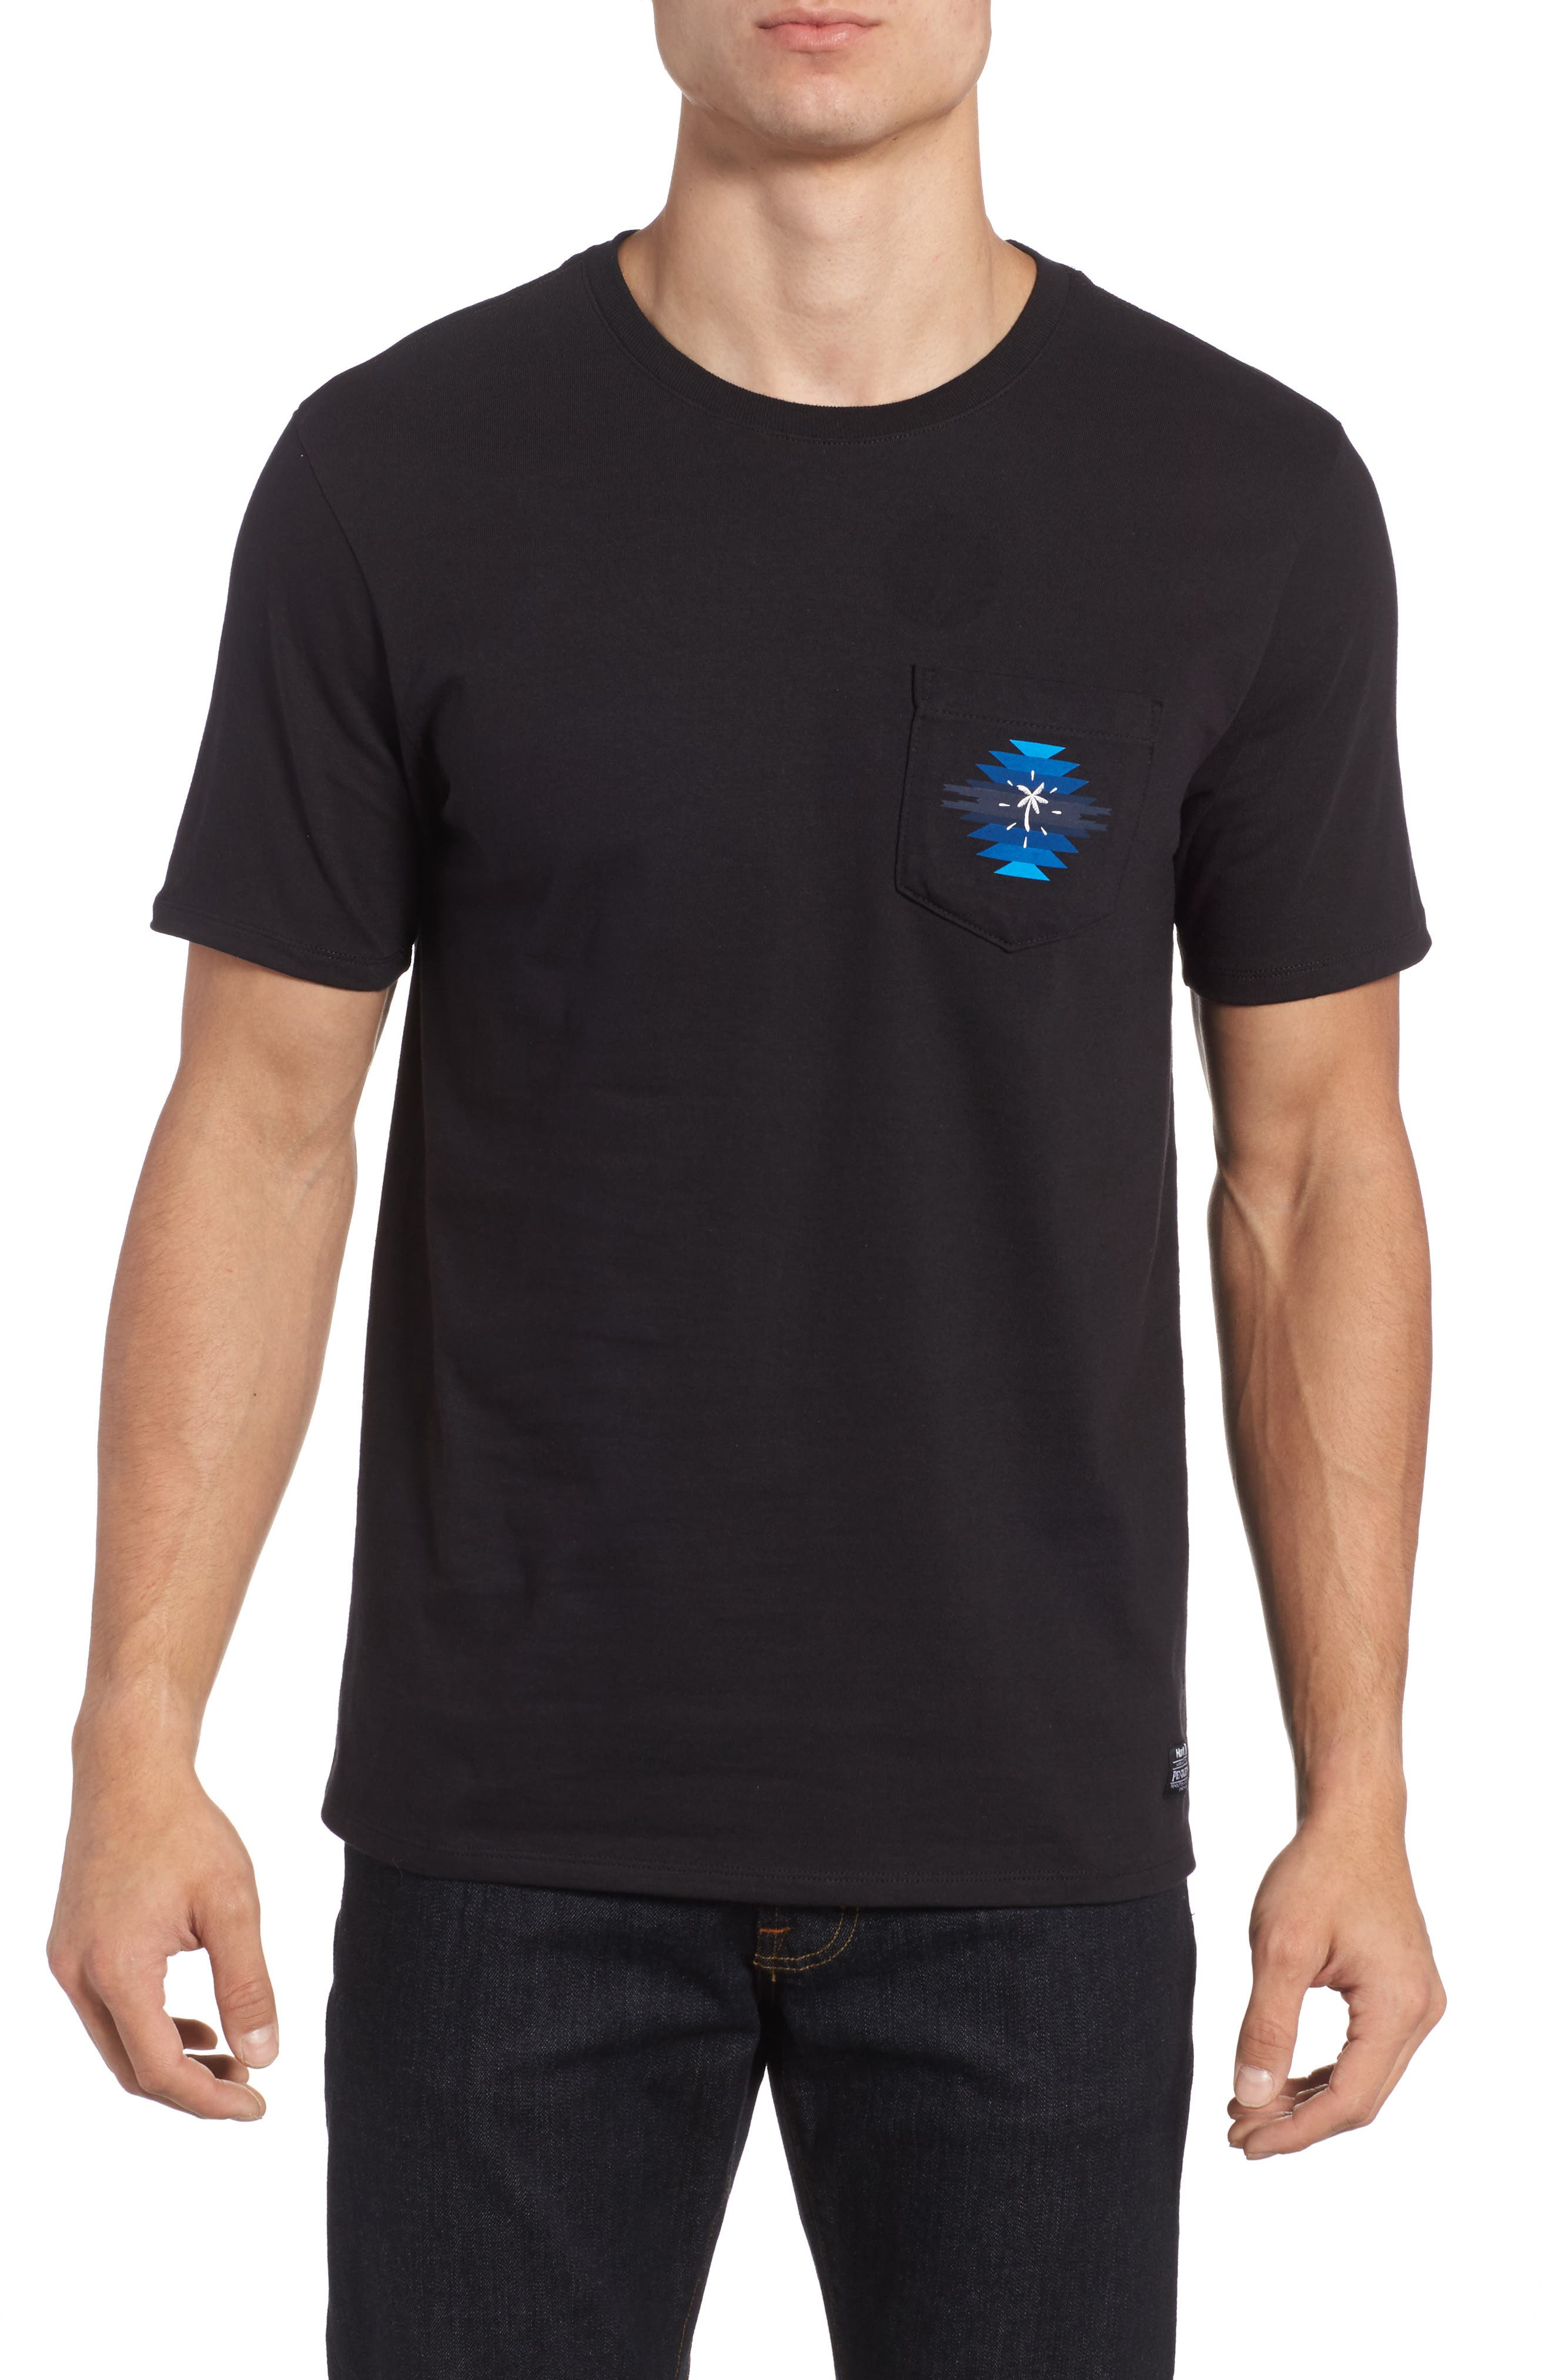 Hurley x Pendleton Pocket T-Shirt